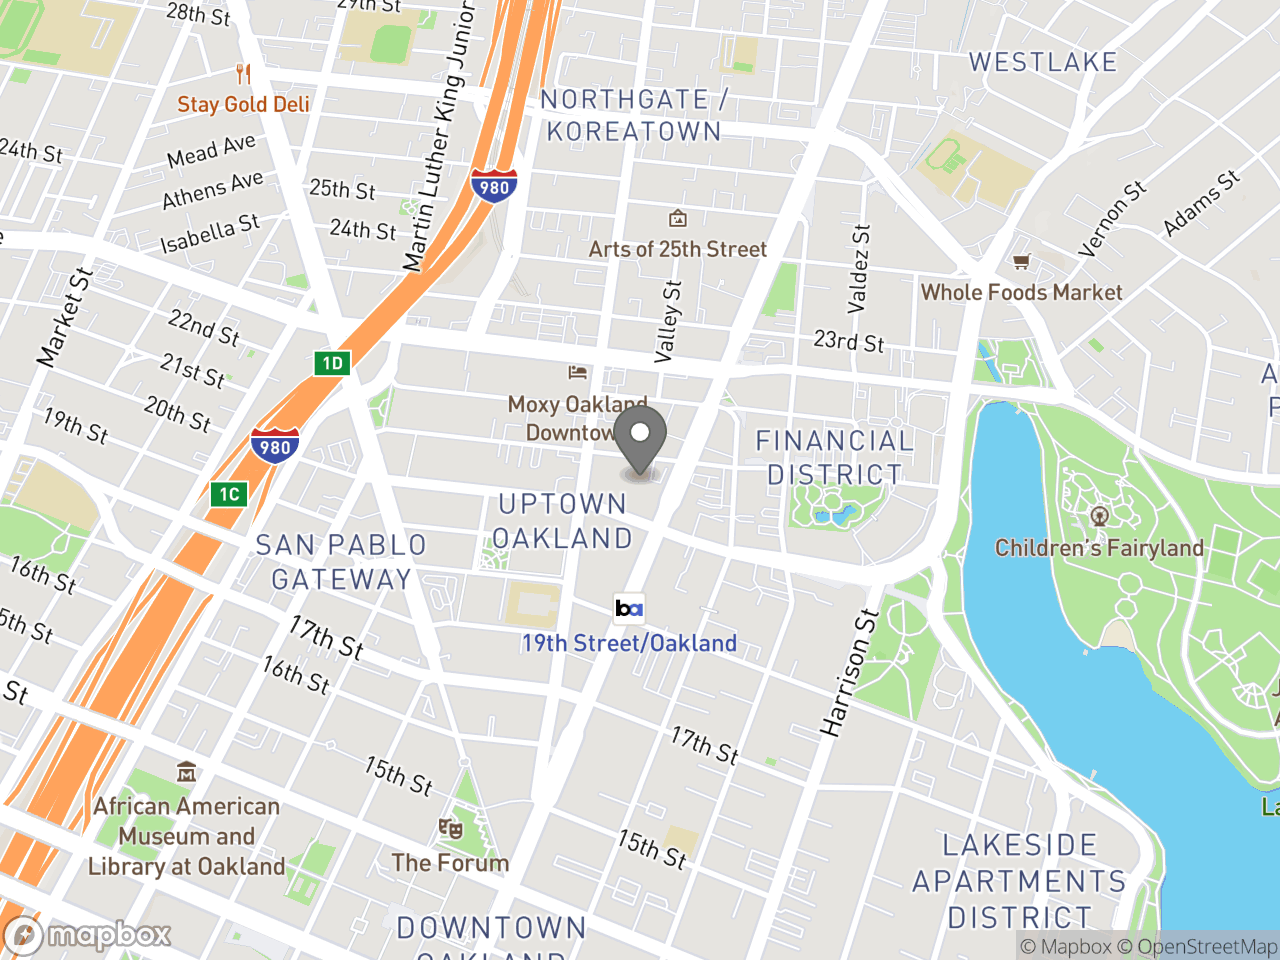 Map location for Paramount Theater Board's Monthly Meeting, located at 2025 Broadway in Oakland, CA 94612